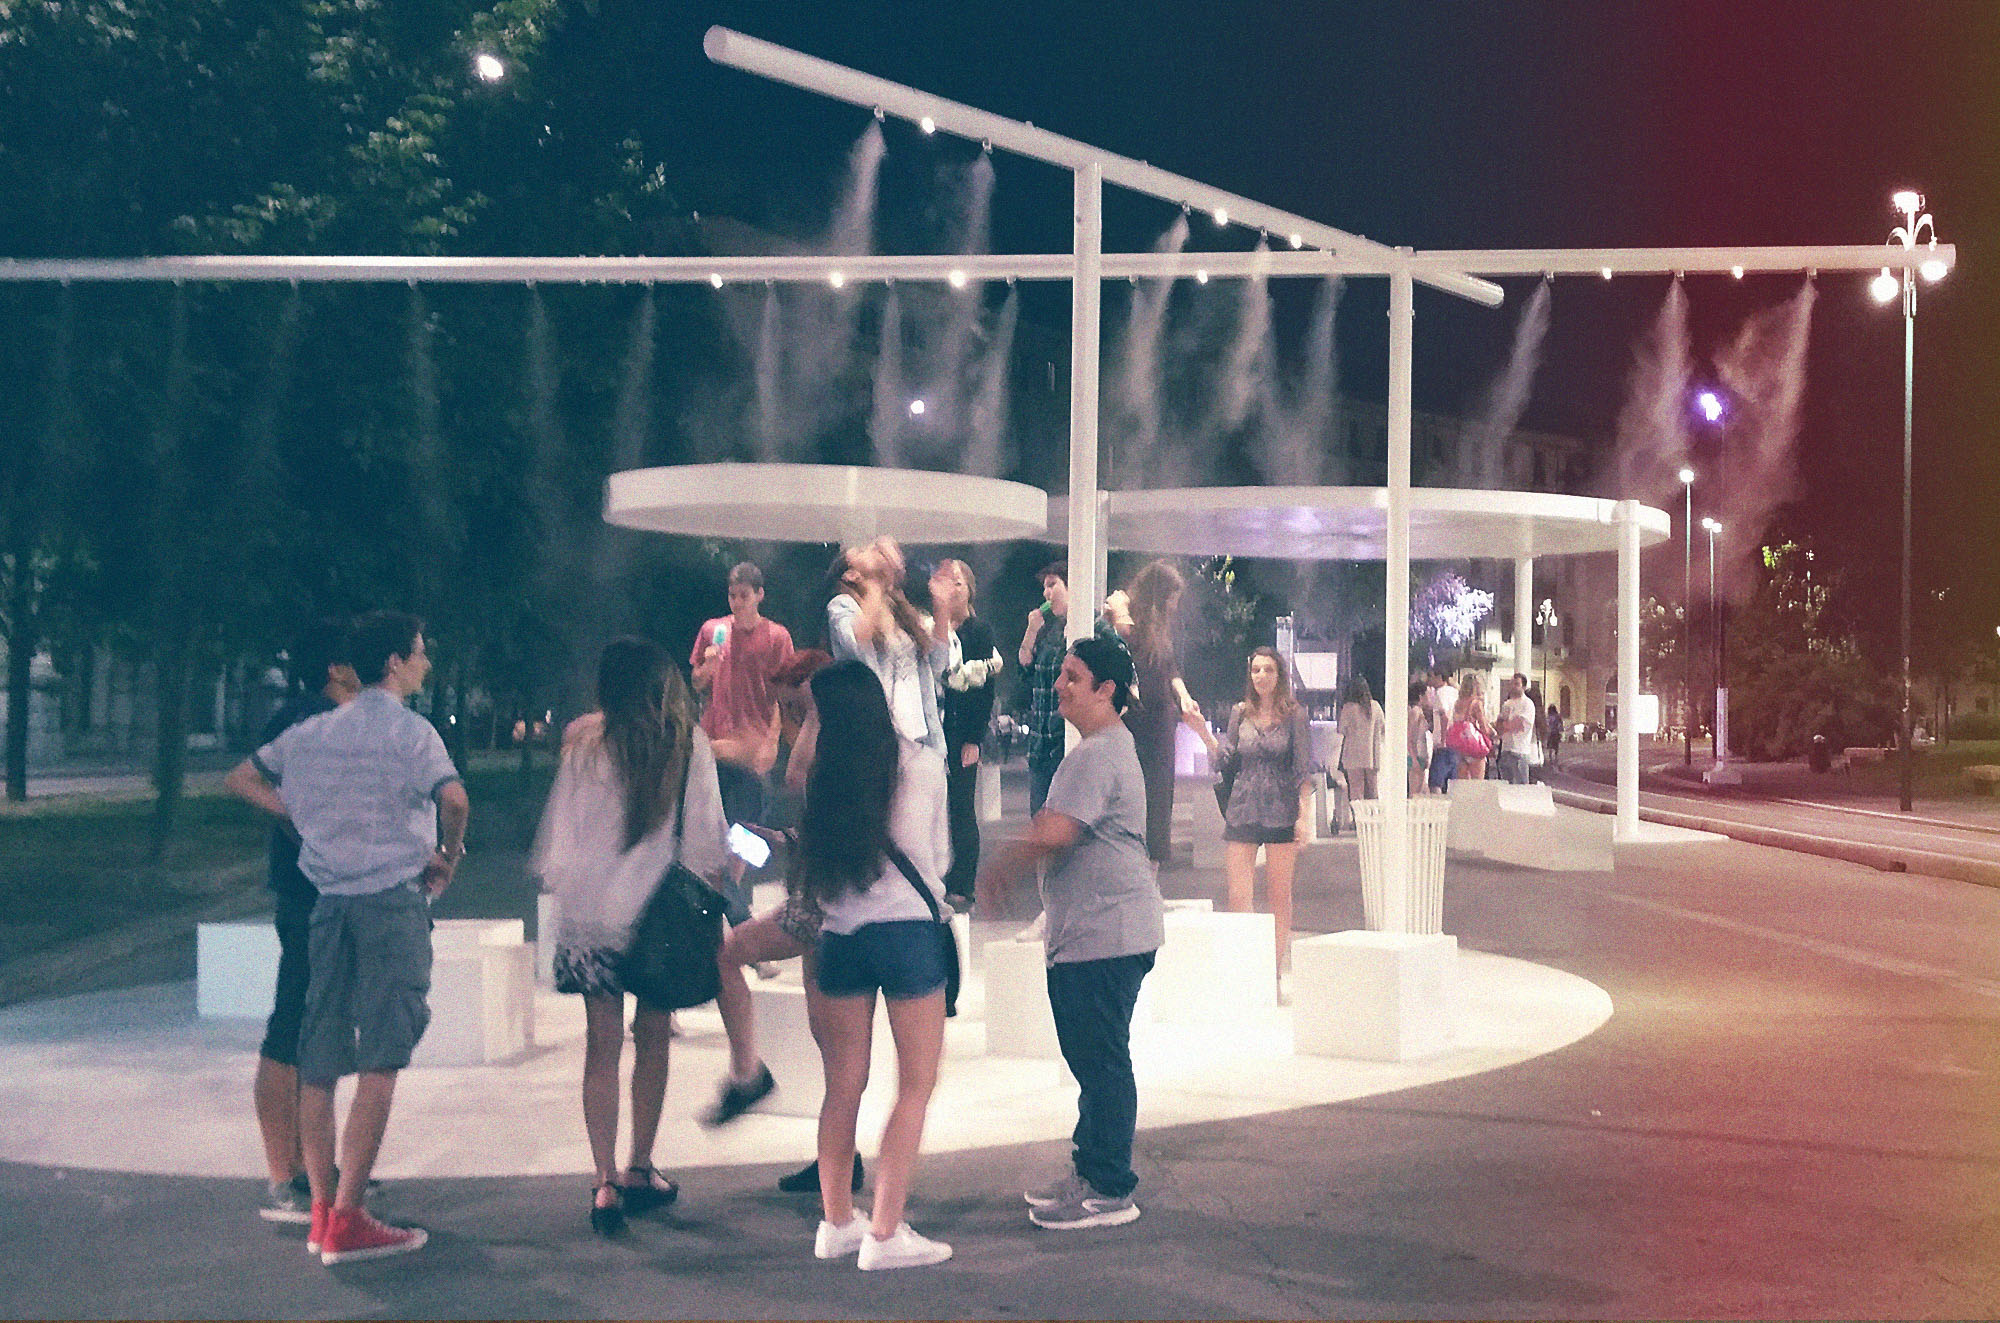 A warm summer night. People refreshing with #nevicata14 misting systems.